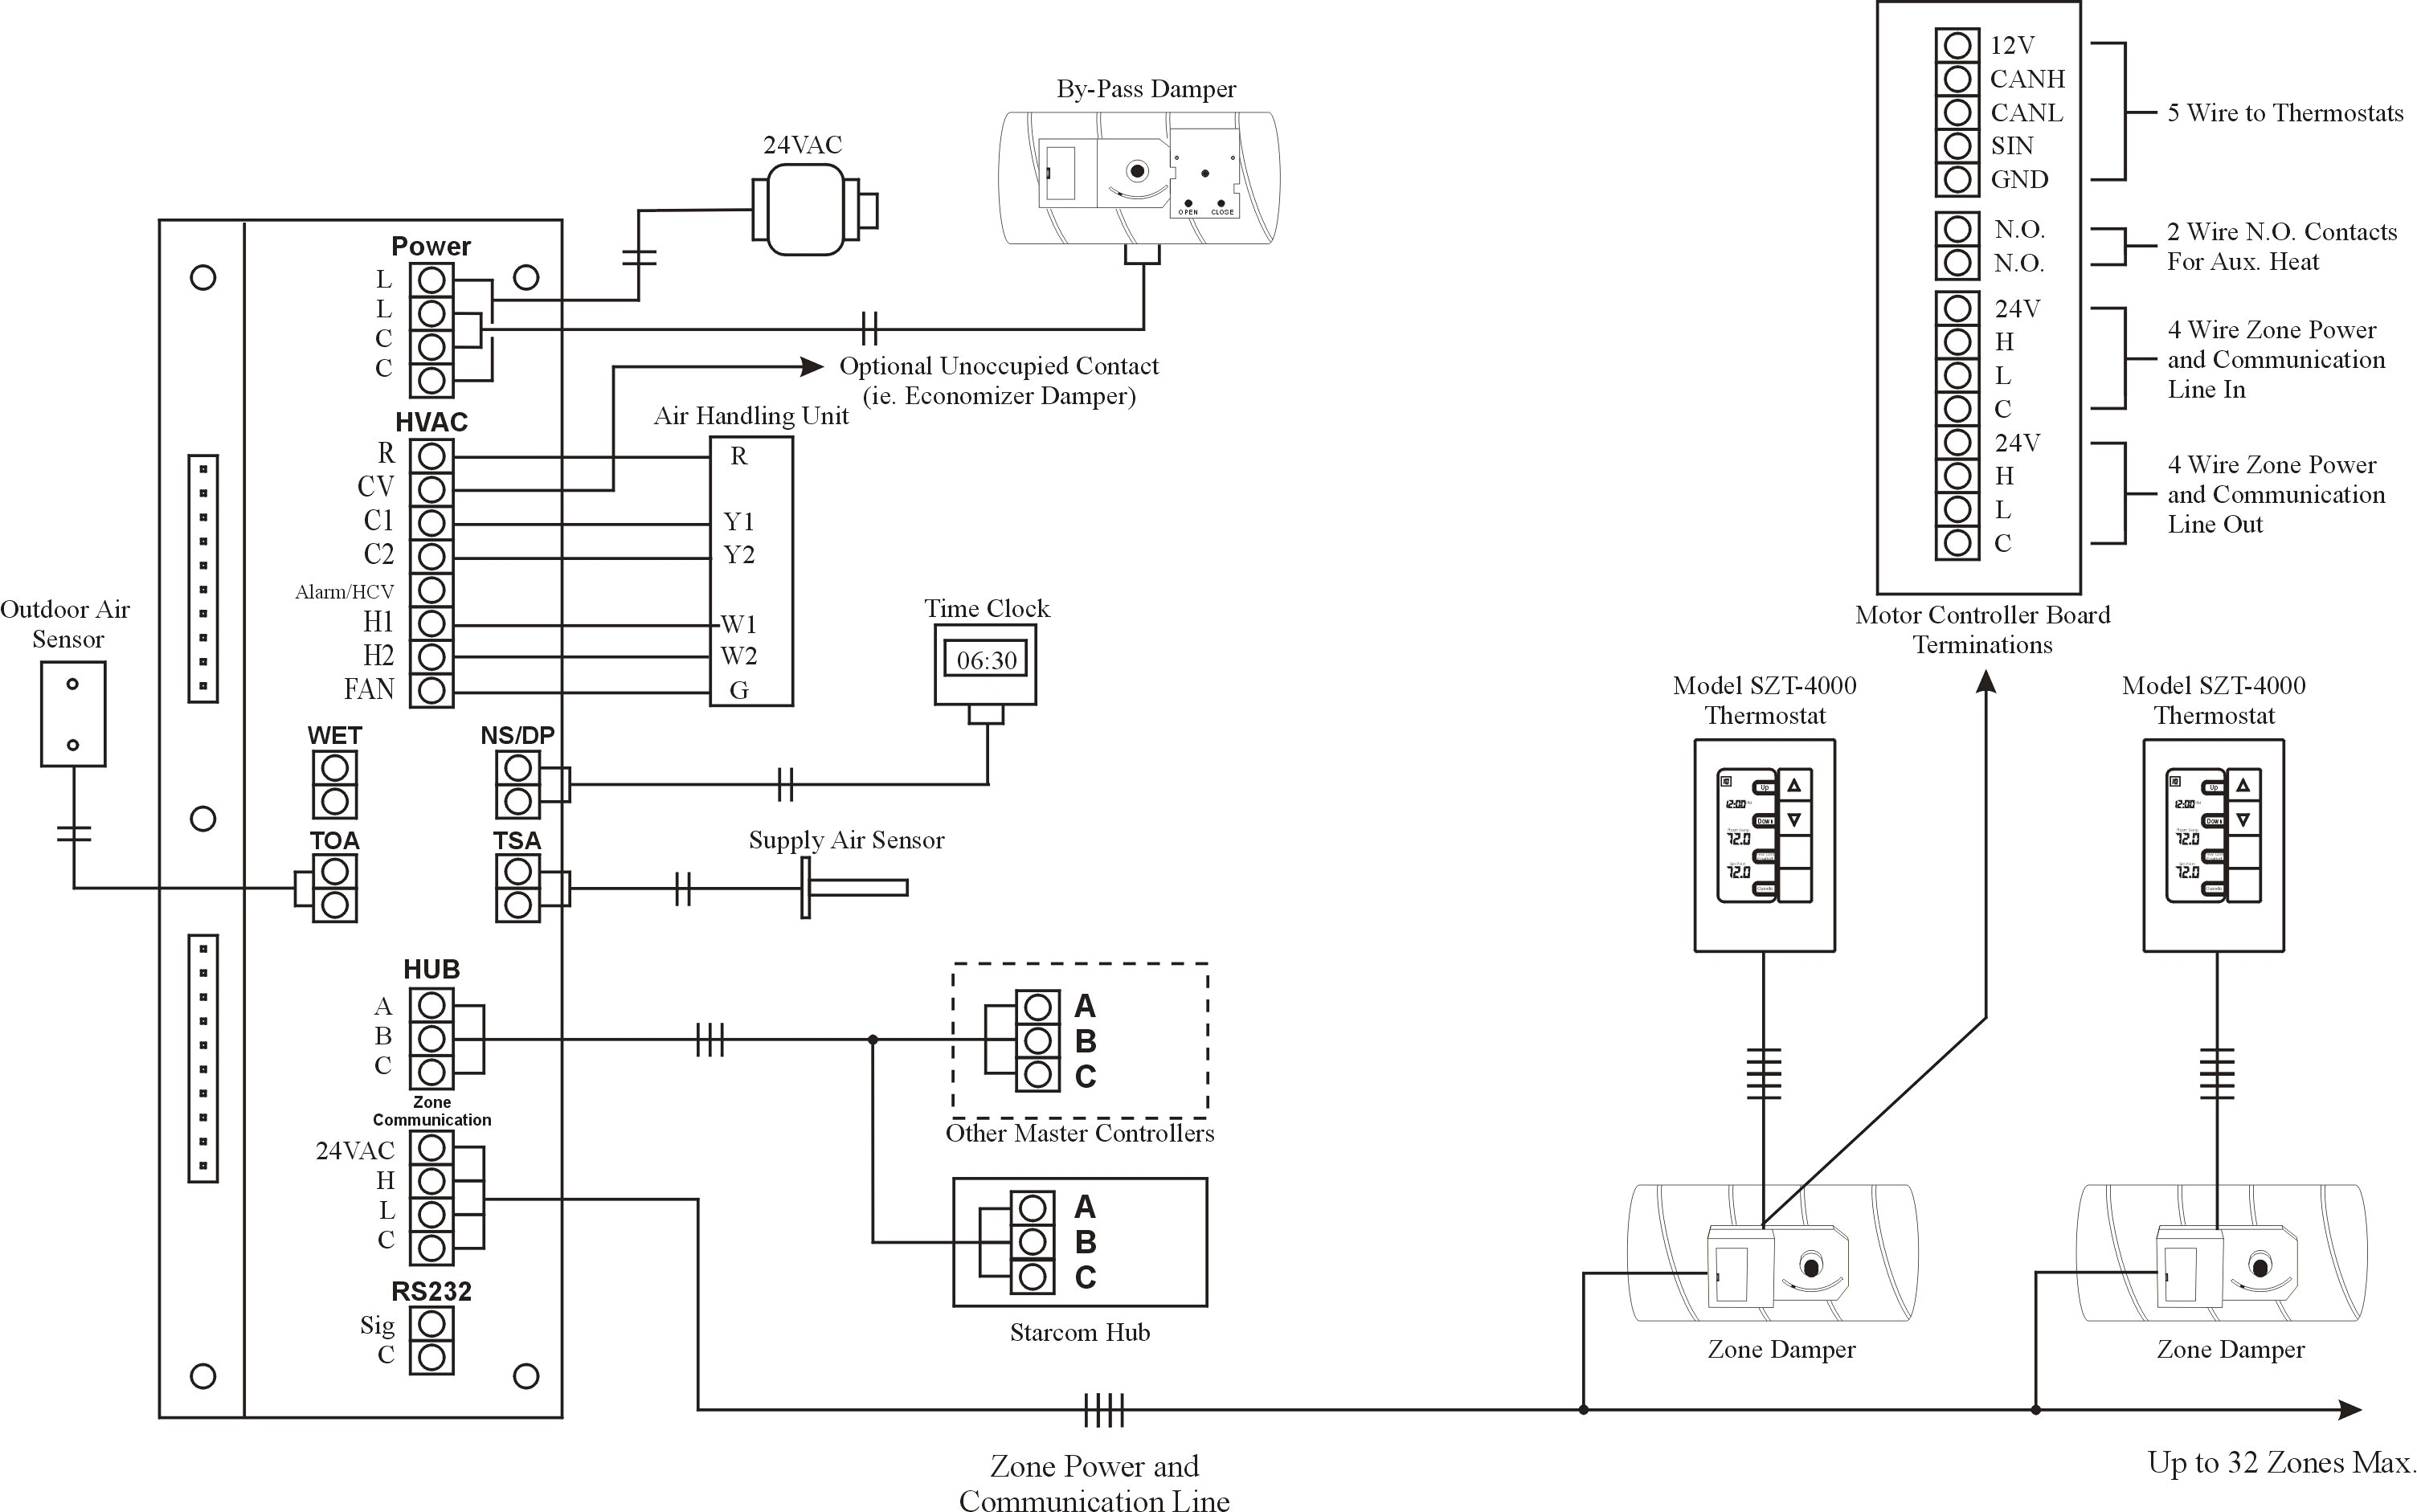 Power Awning Wiring Diagram